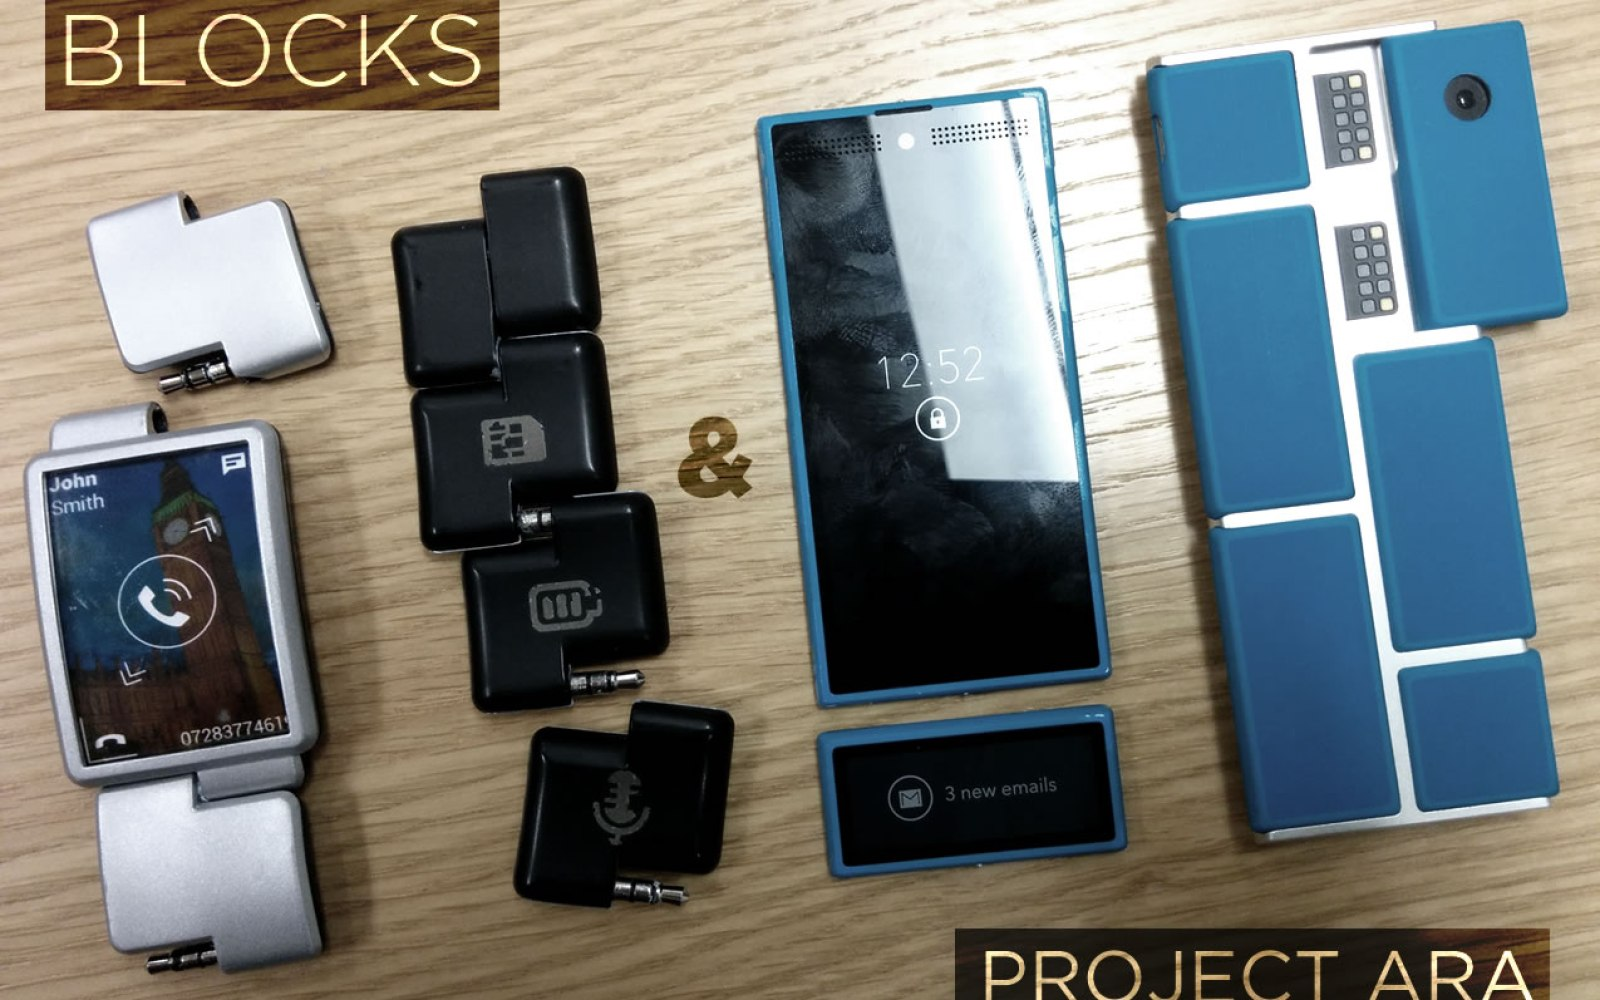 Google potentially working w/ BLOCKS smartwatch team to build cross platform Project Ara modules